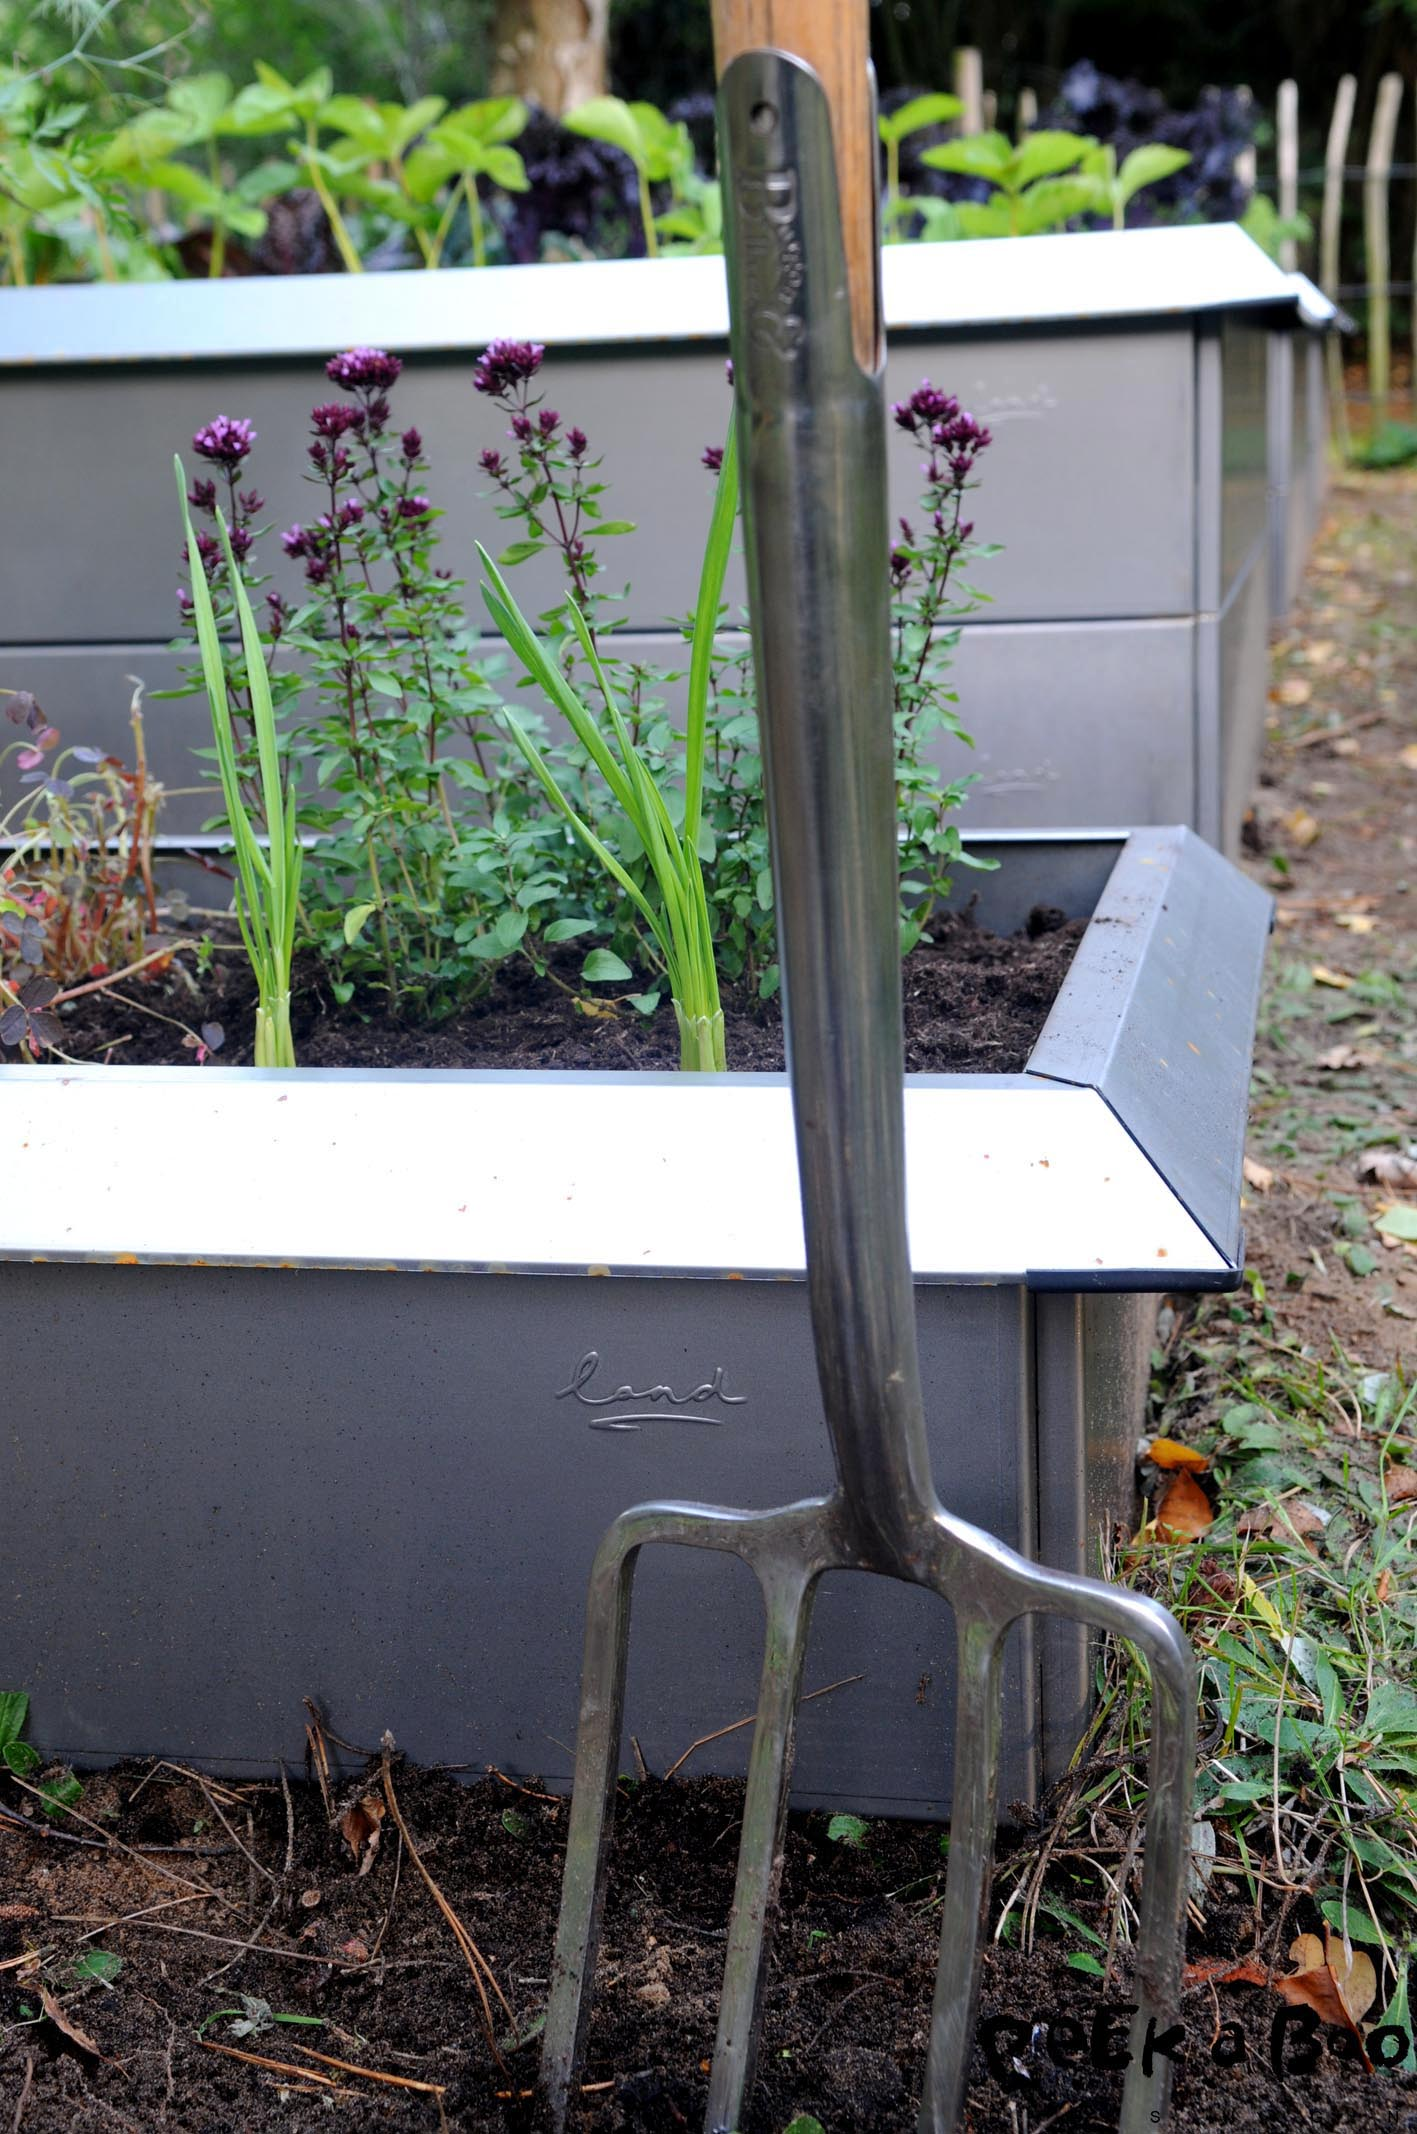 The small raised bed for herbs are essential in a kitchen garden